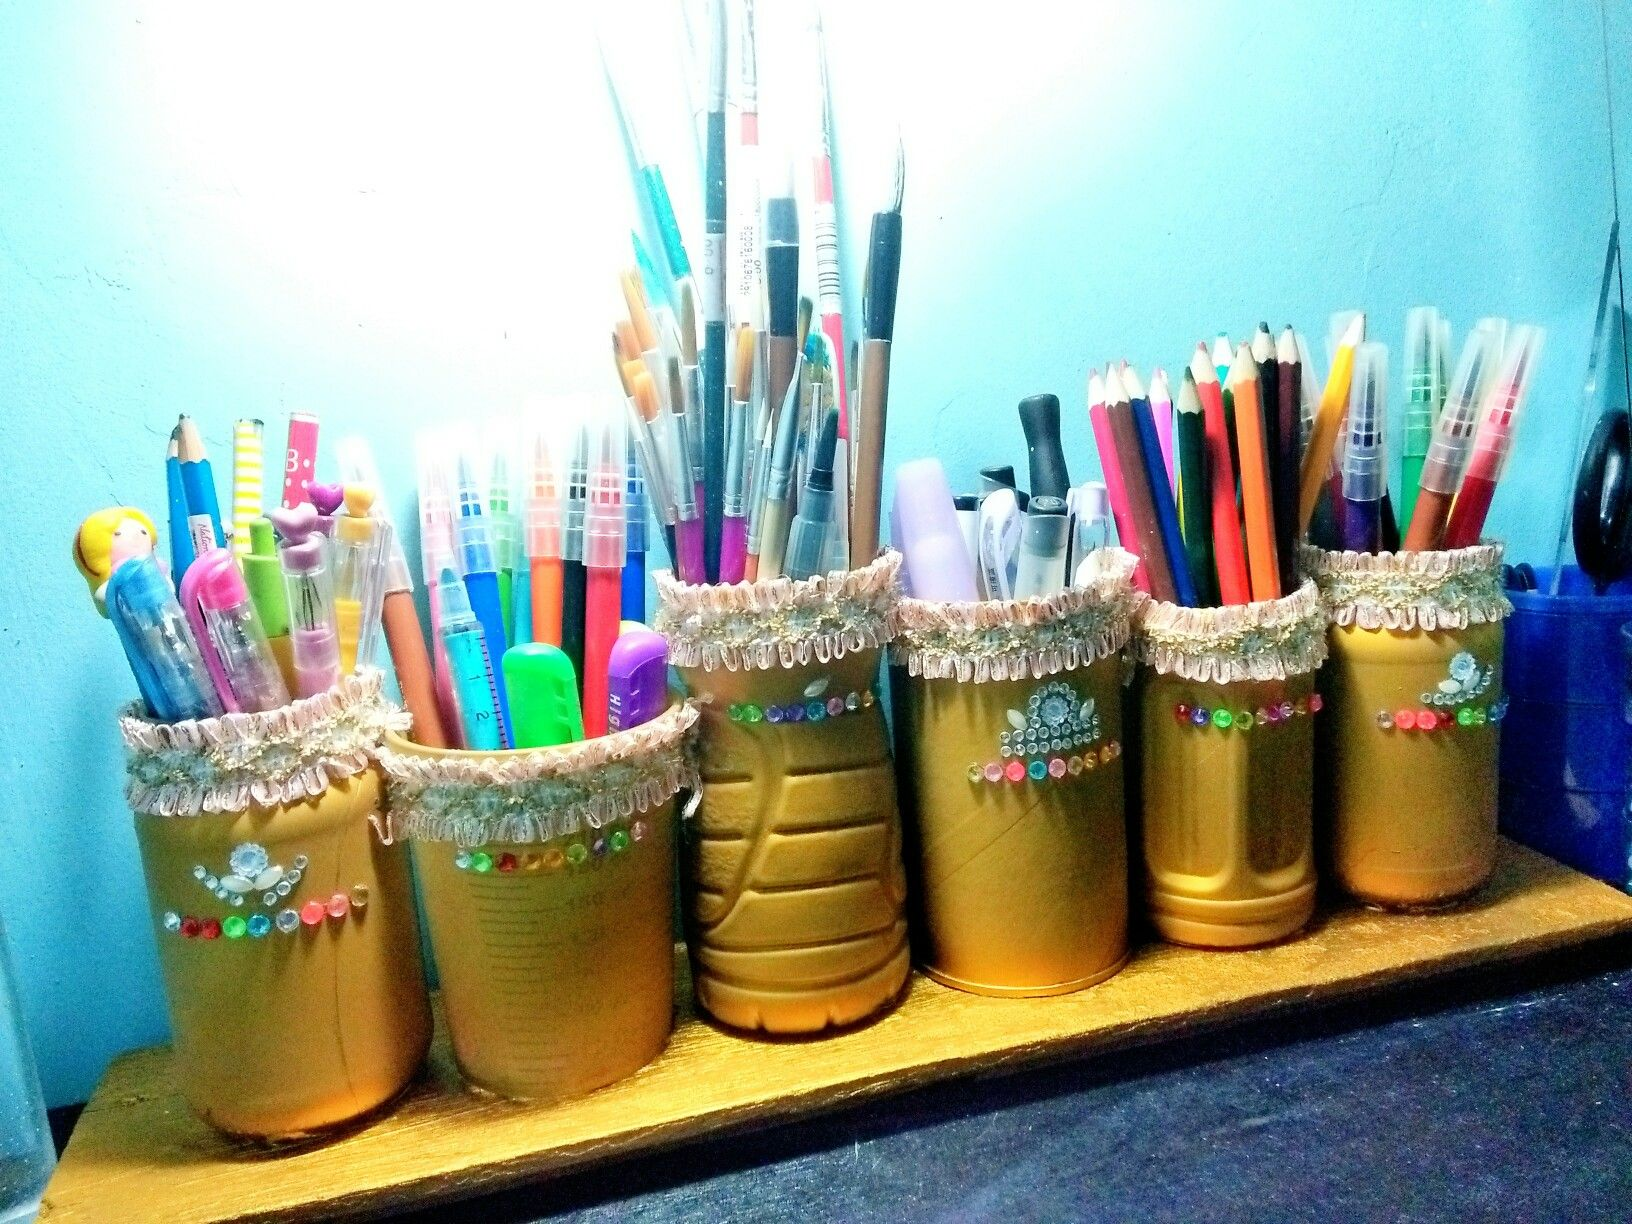 Recycled Bottles As Pen Organizers